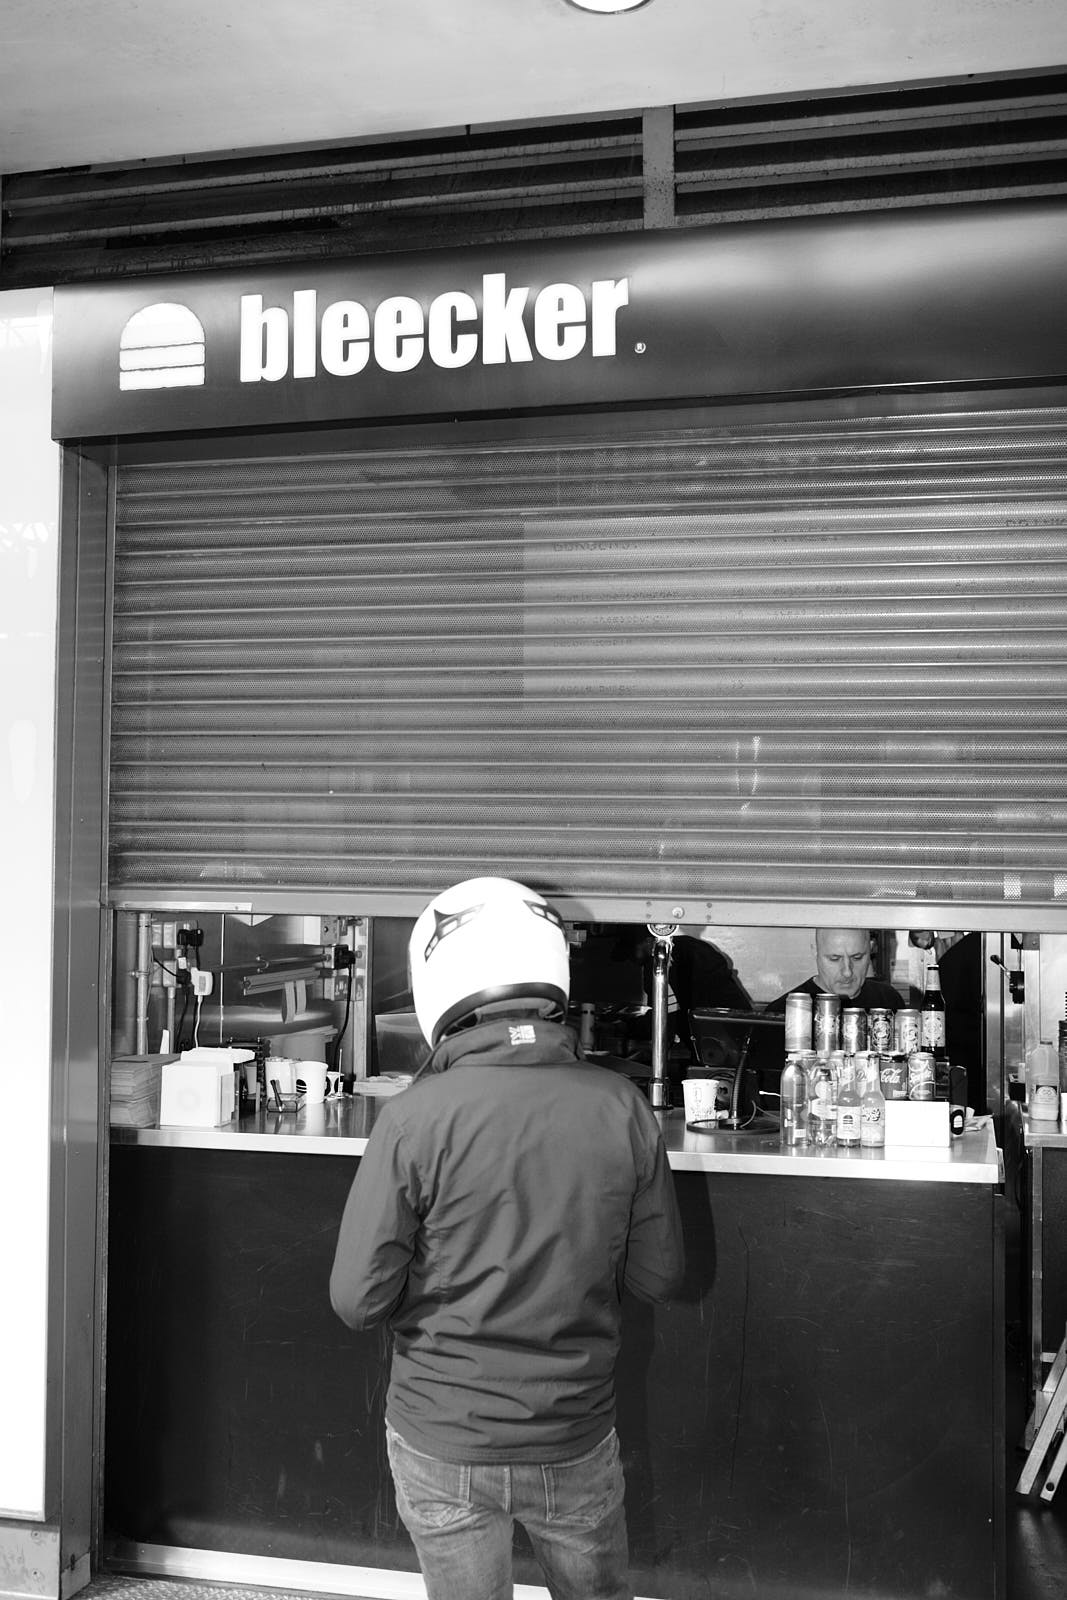 A delivery driver waits outside Bleecker Burger at Old Spitalfields Market